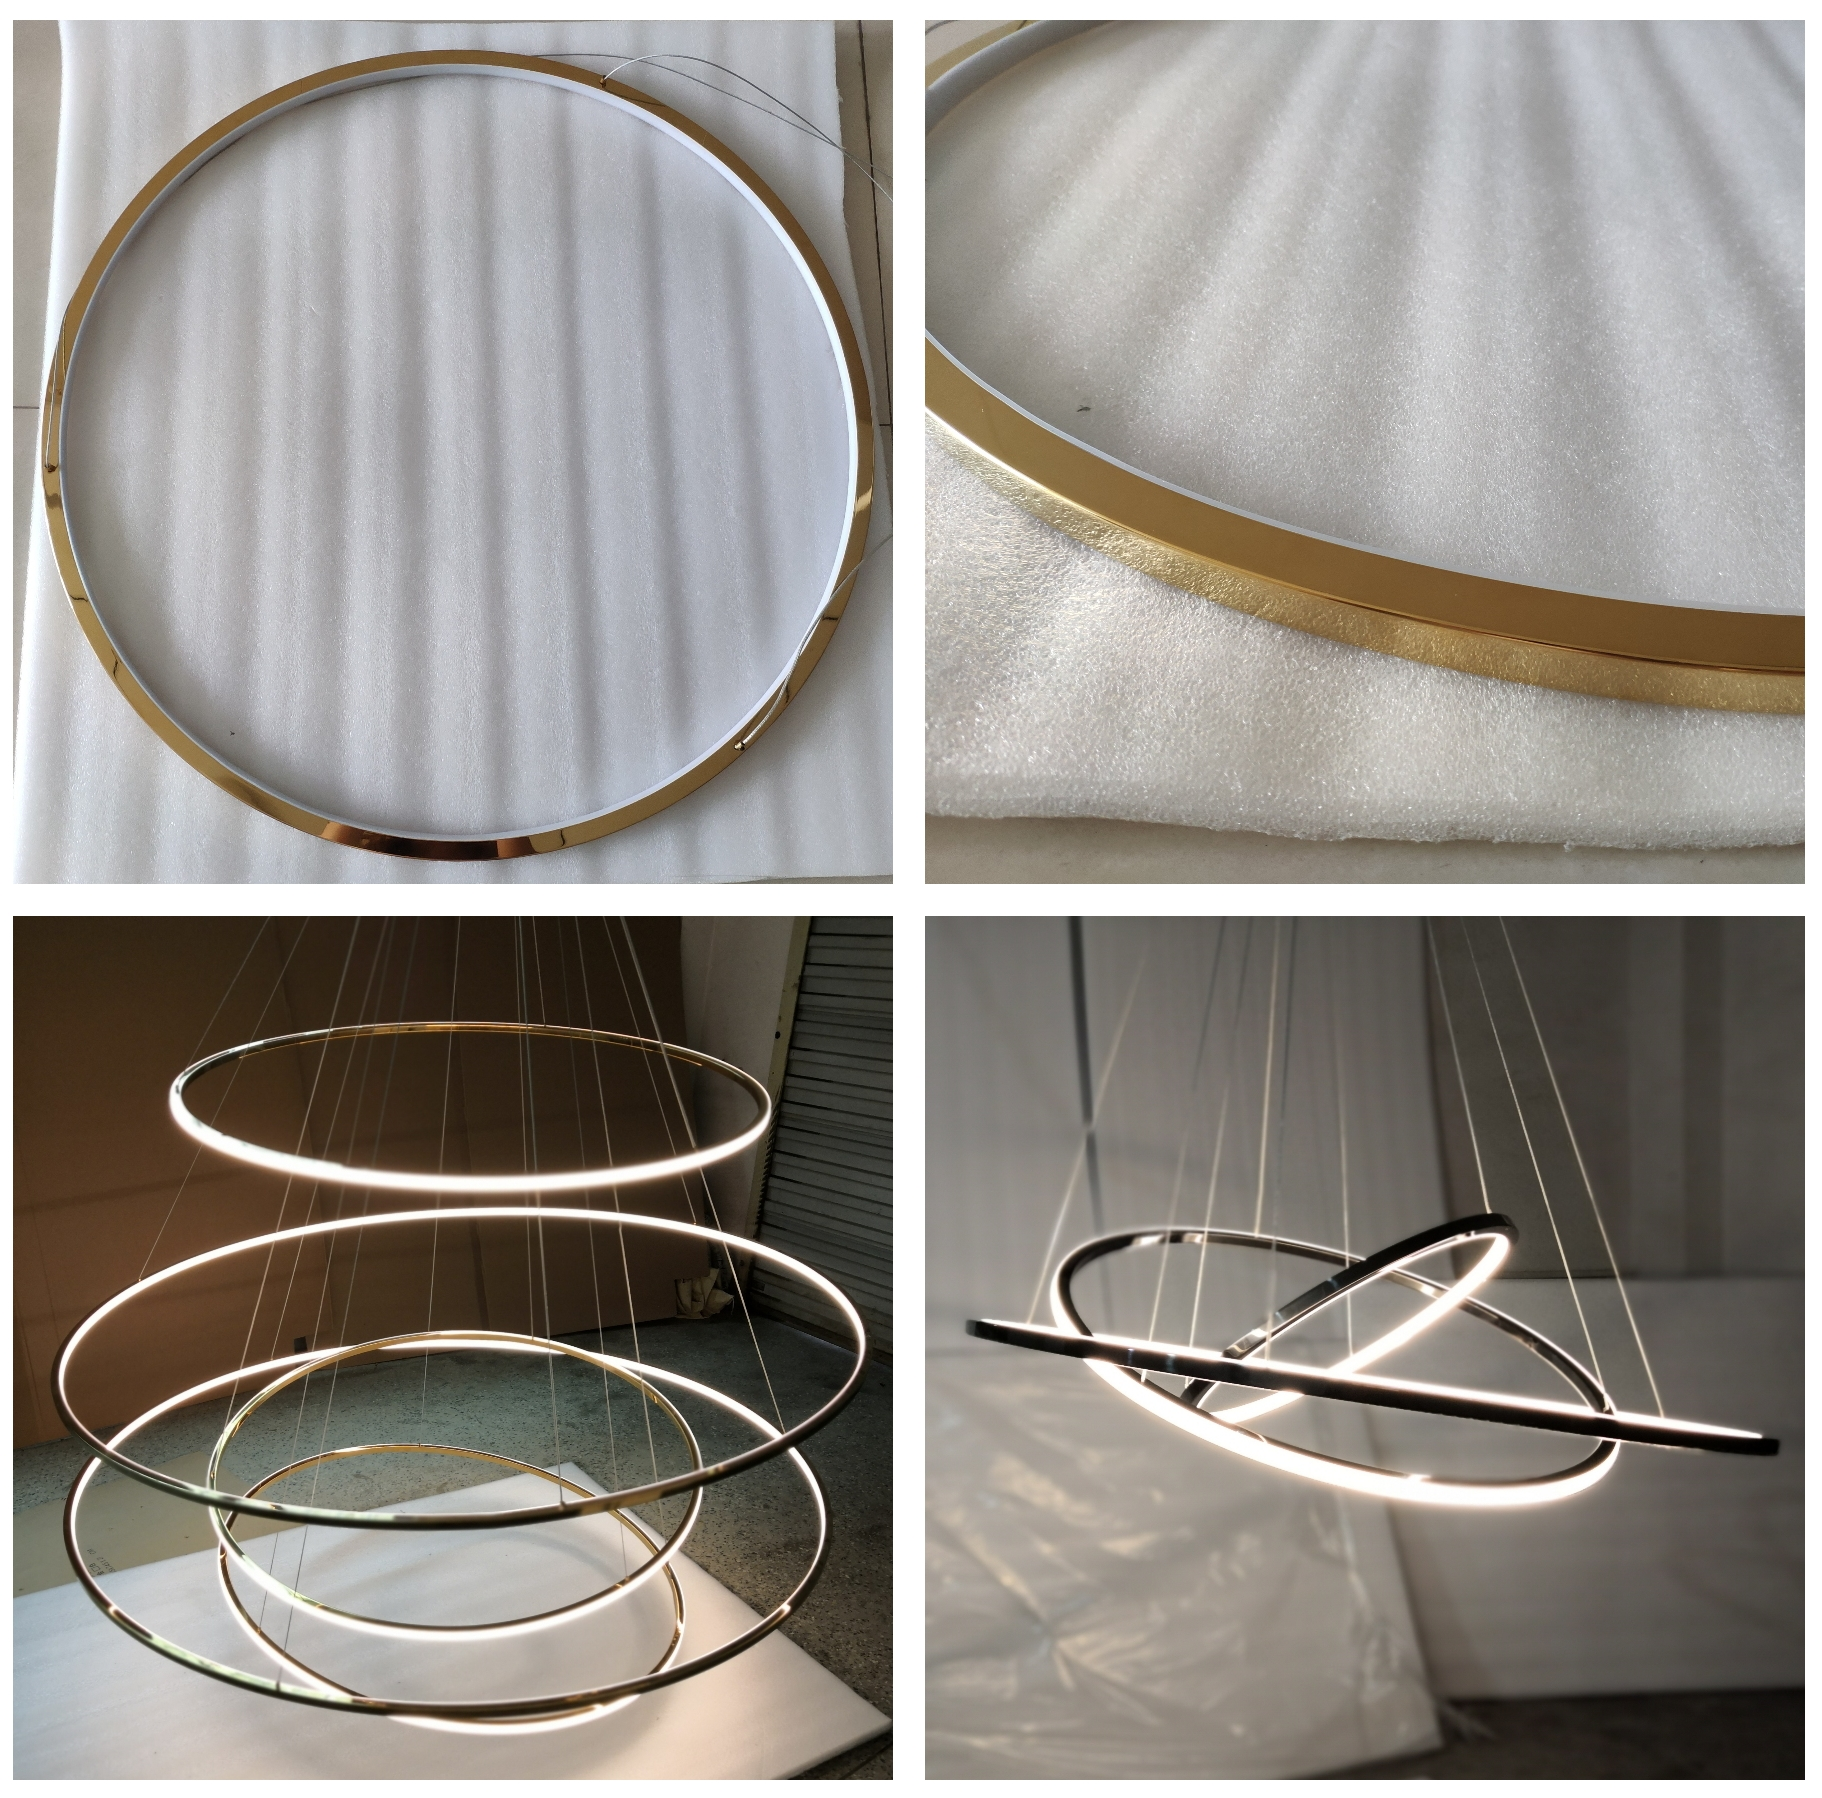 L4u Promotion Gold Brass 11 Rings Circular LED Pendant Light Luxury Chandelier Modern Hanging Lamp for Staircase